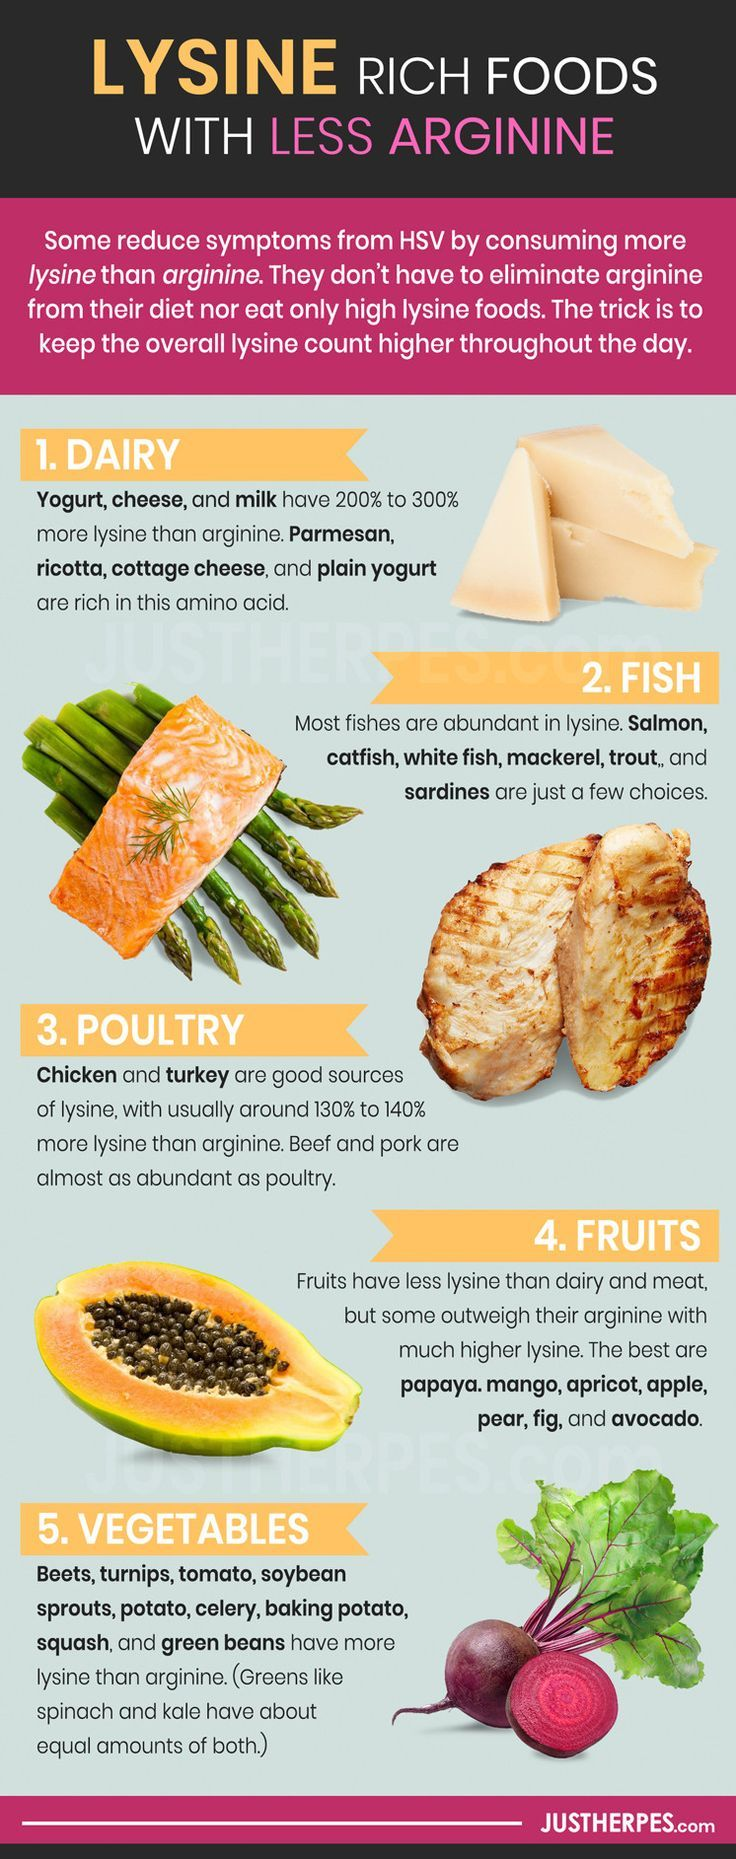 High lysine rich foods with less arginine infographic